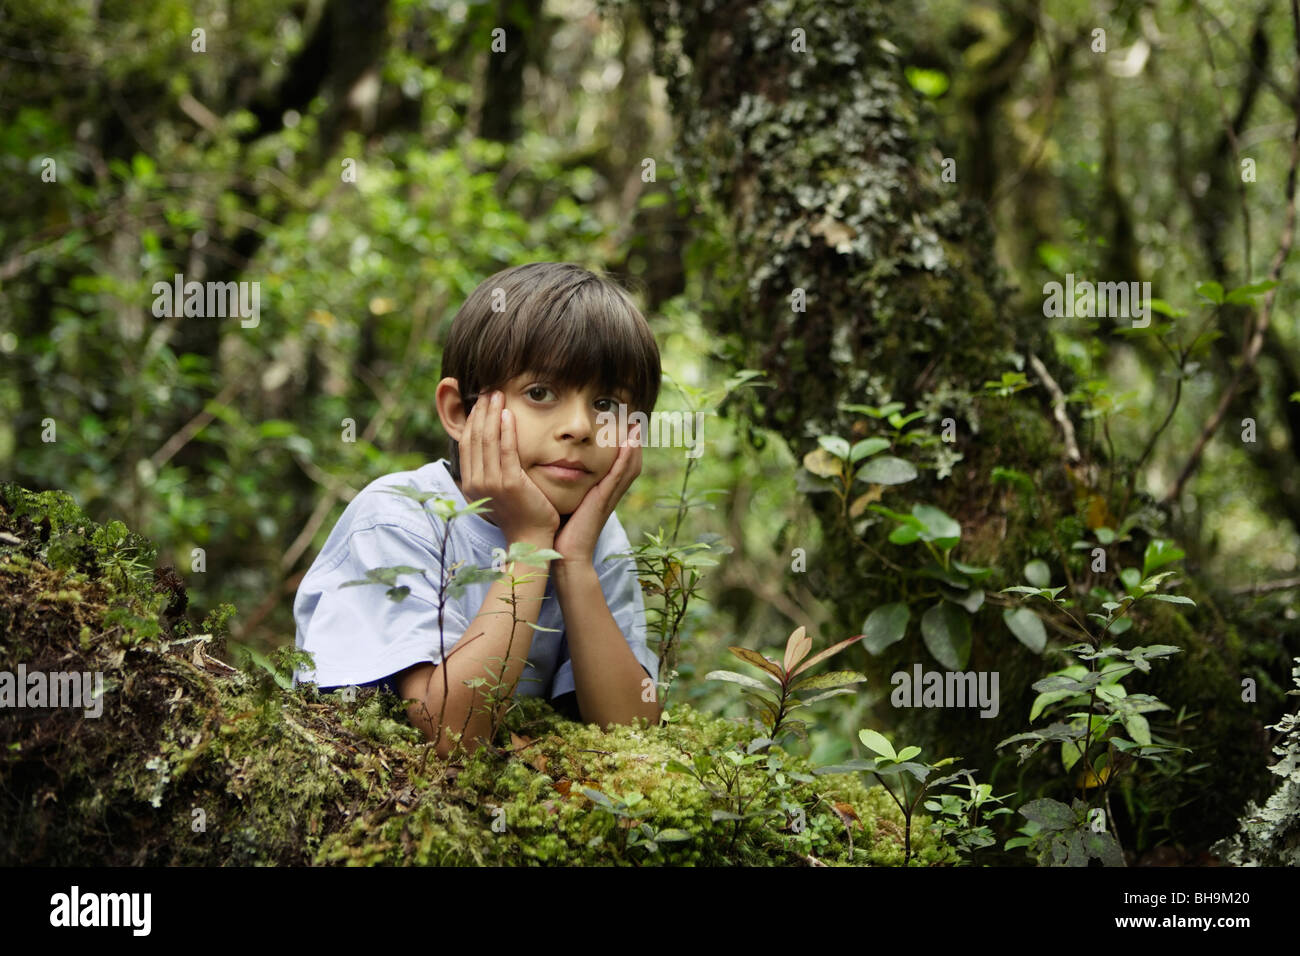 Boy in woods - Stock Image